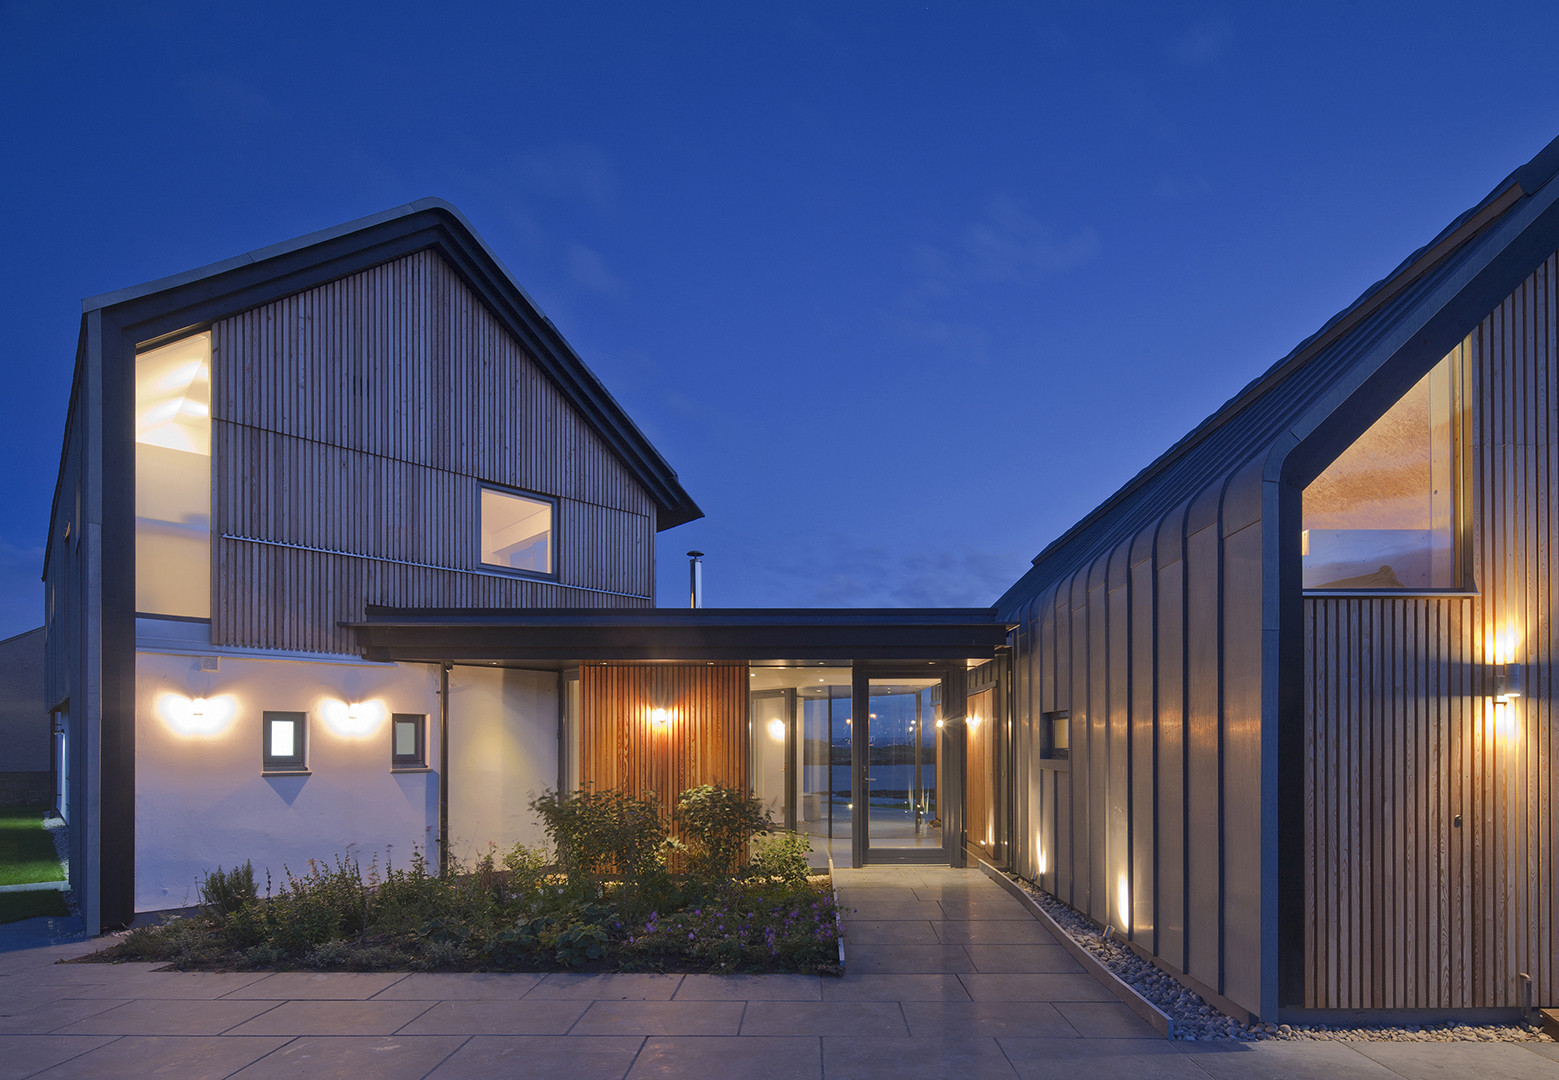 House In Elie By Wt Architecture In Fife Scotland